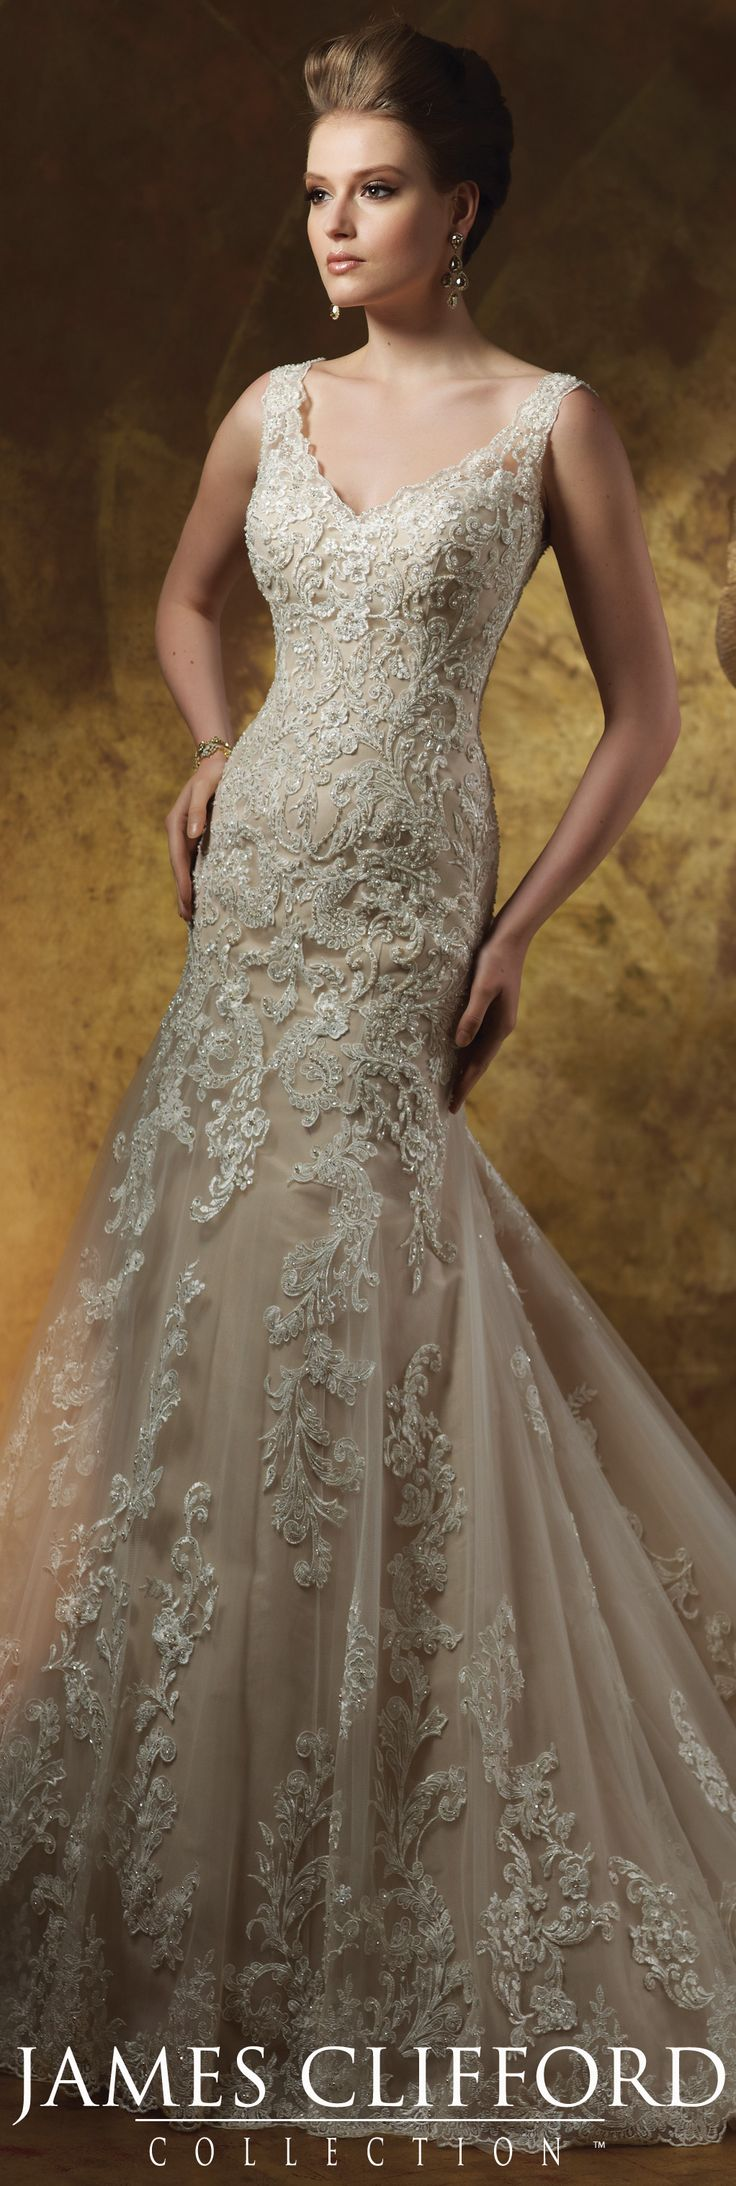 The James Clifford Fall 2015 Wedding Dress Collection - Style No. J21501 #laceweddingdresses